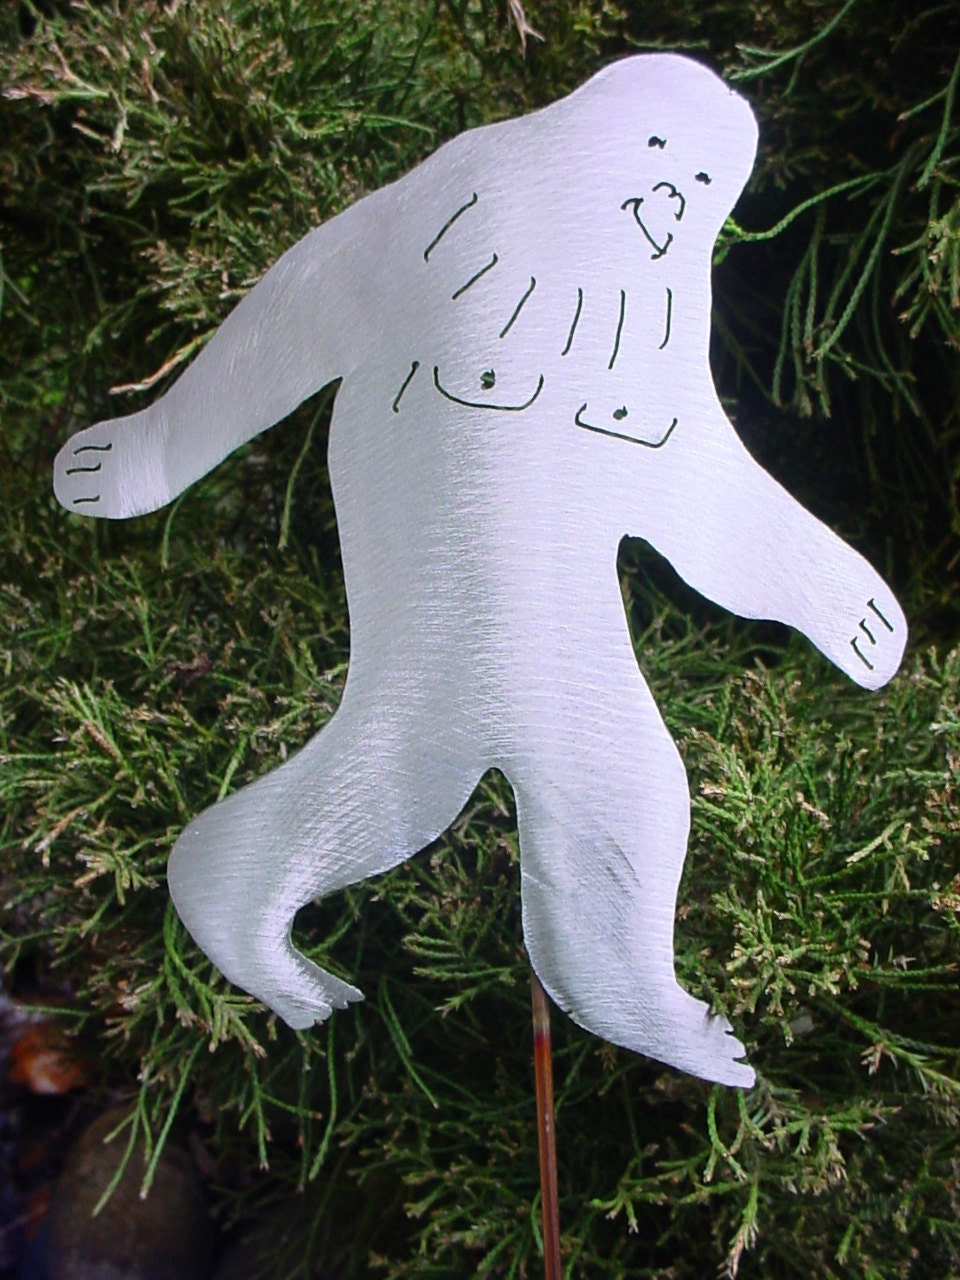 Popular items for sasquatch yeti on etsy for Abominable snowman yard decoration